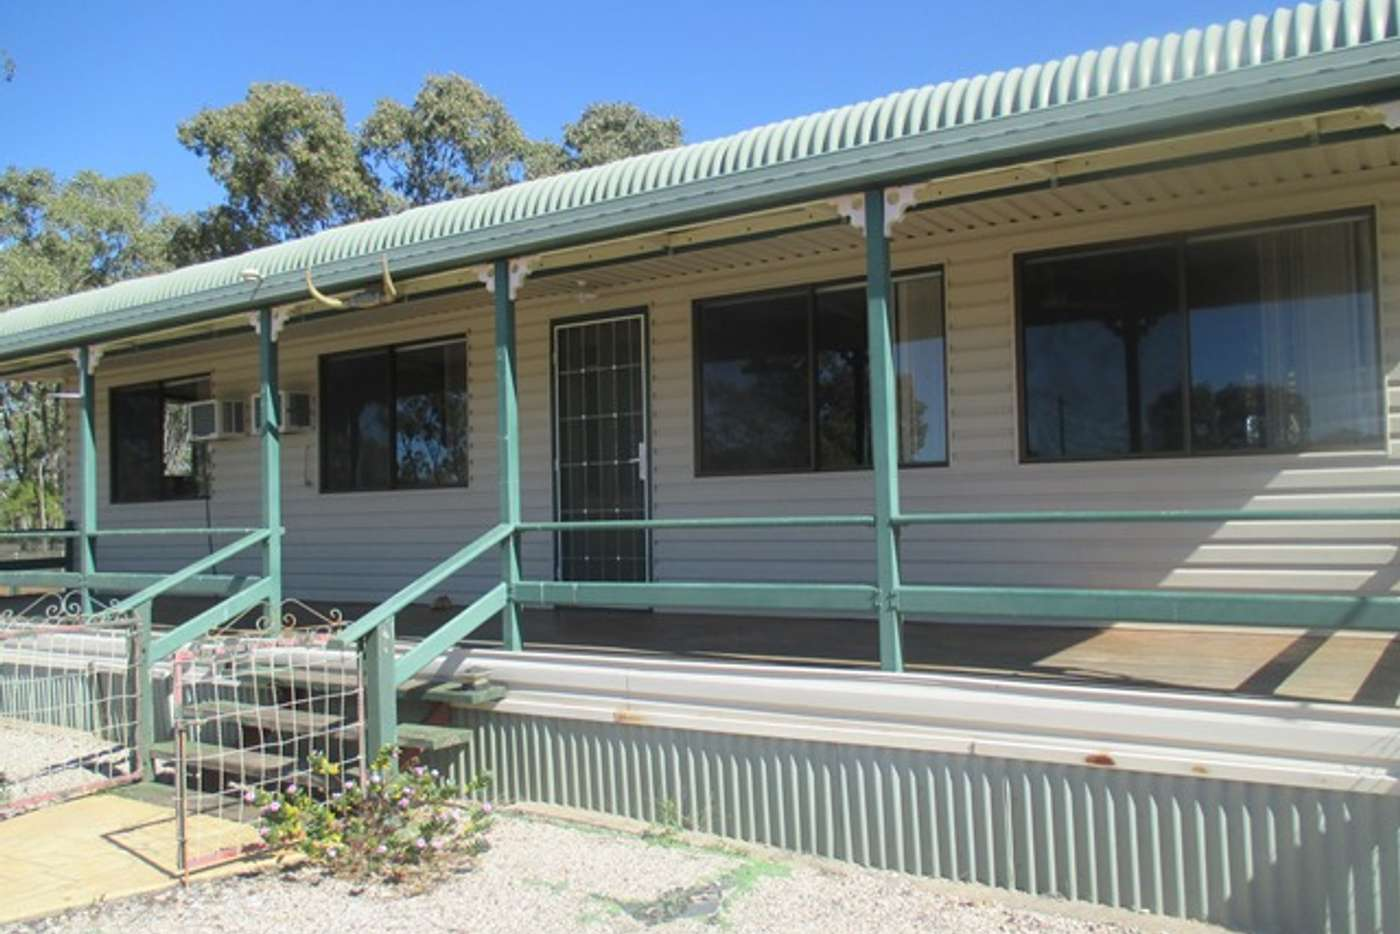 Main view of Homely house listing, 21 BASS STREET, Yuleba QLD 4427